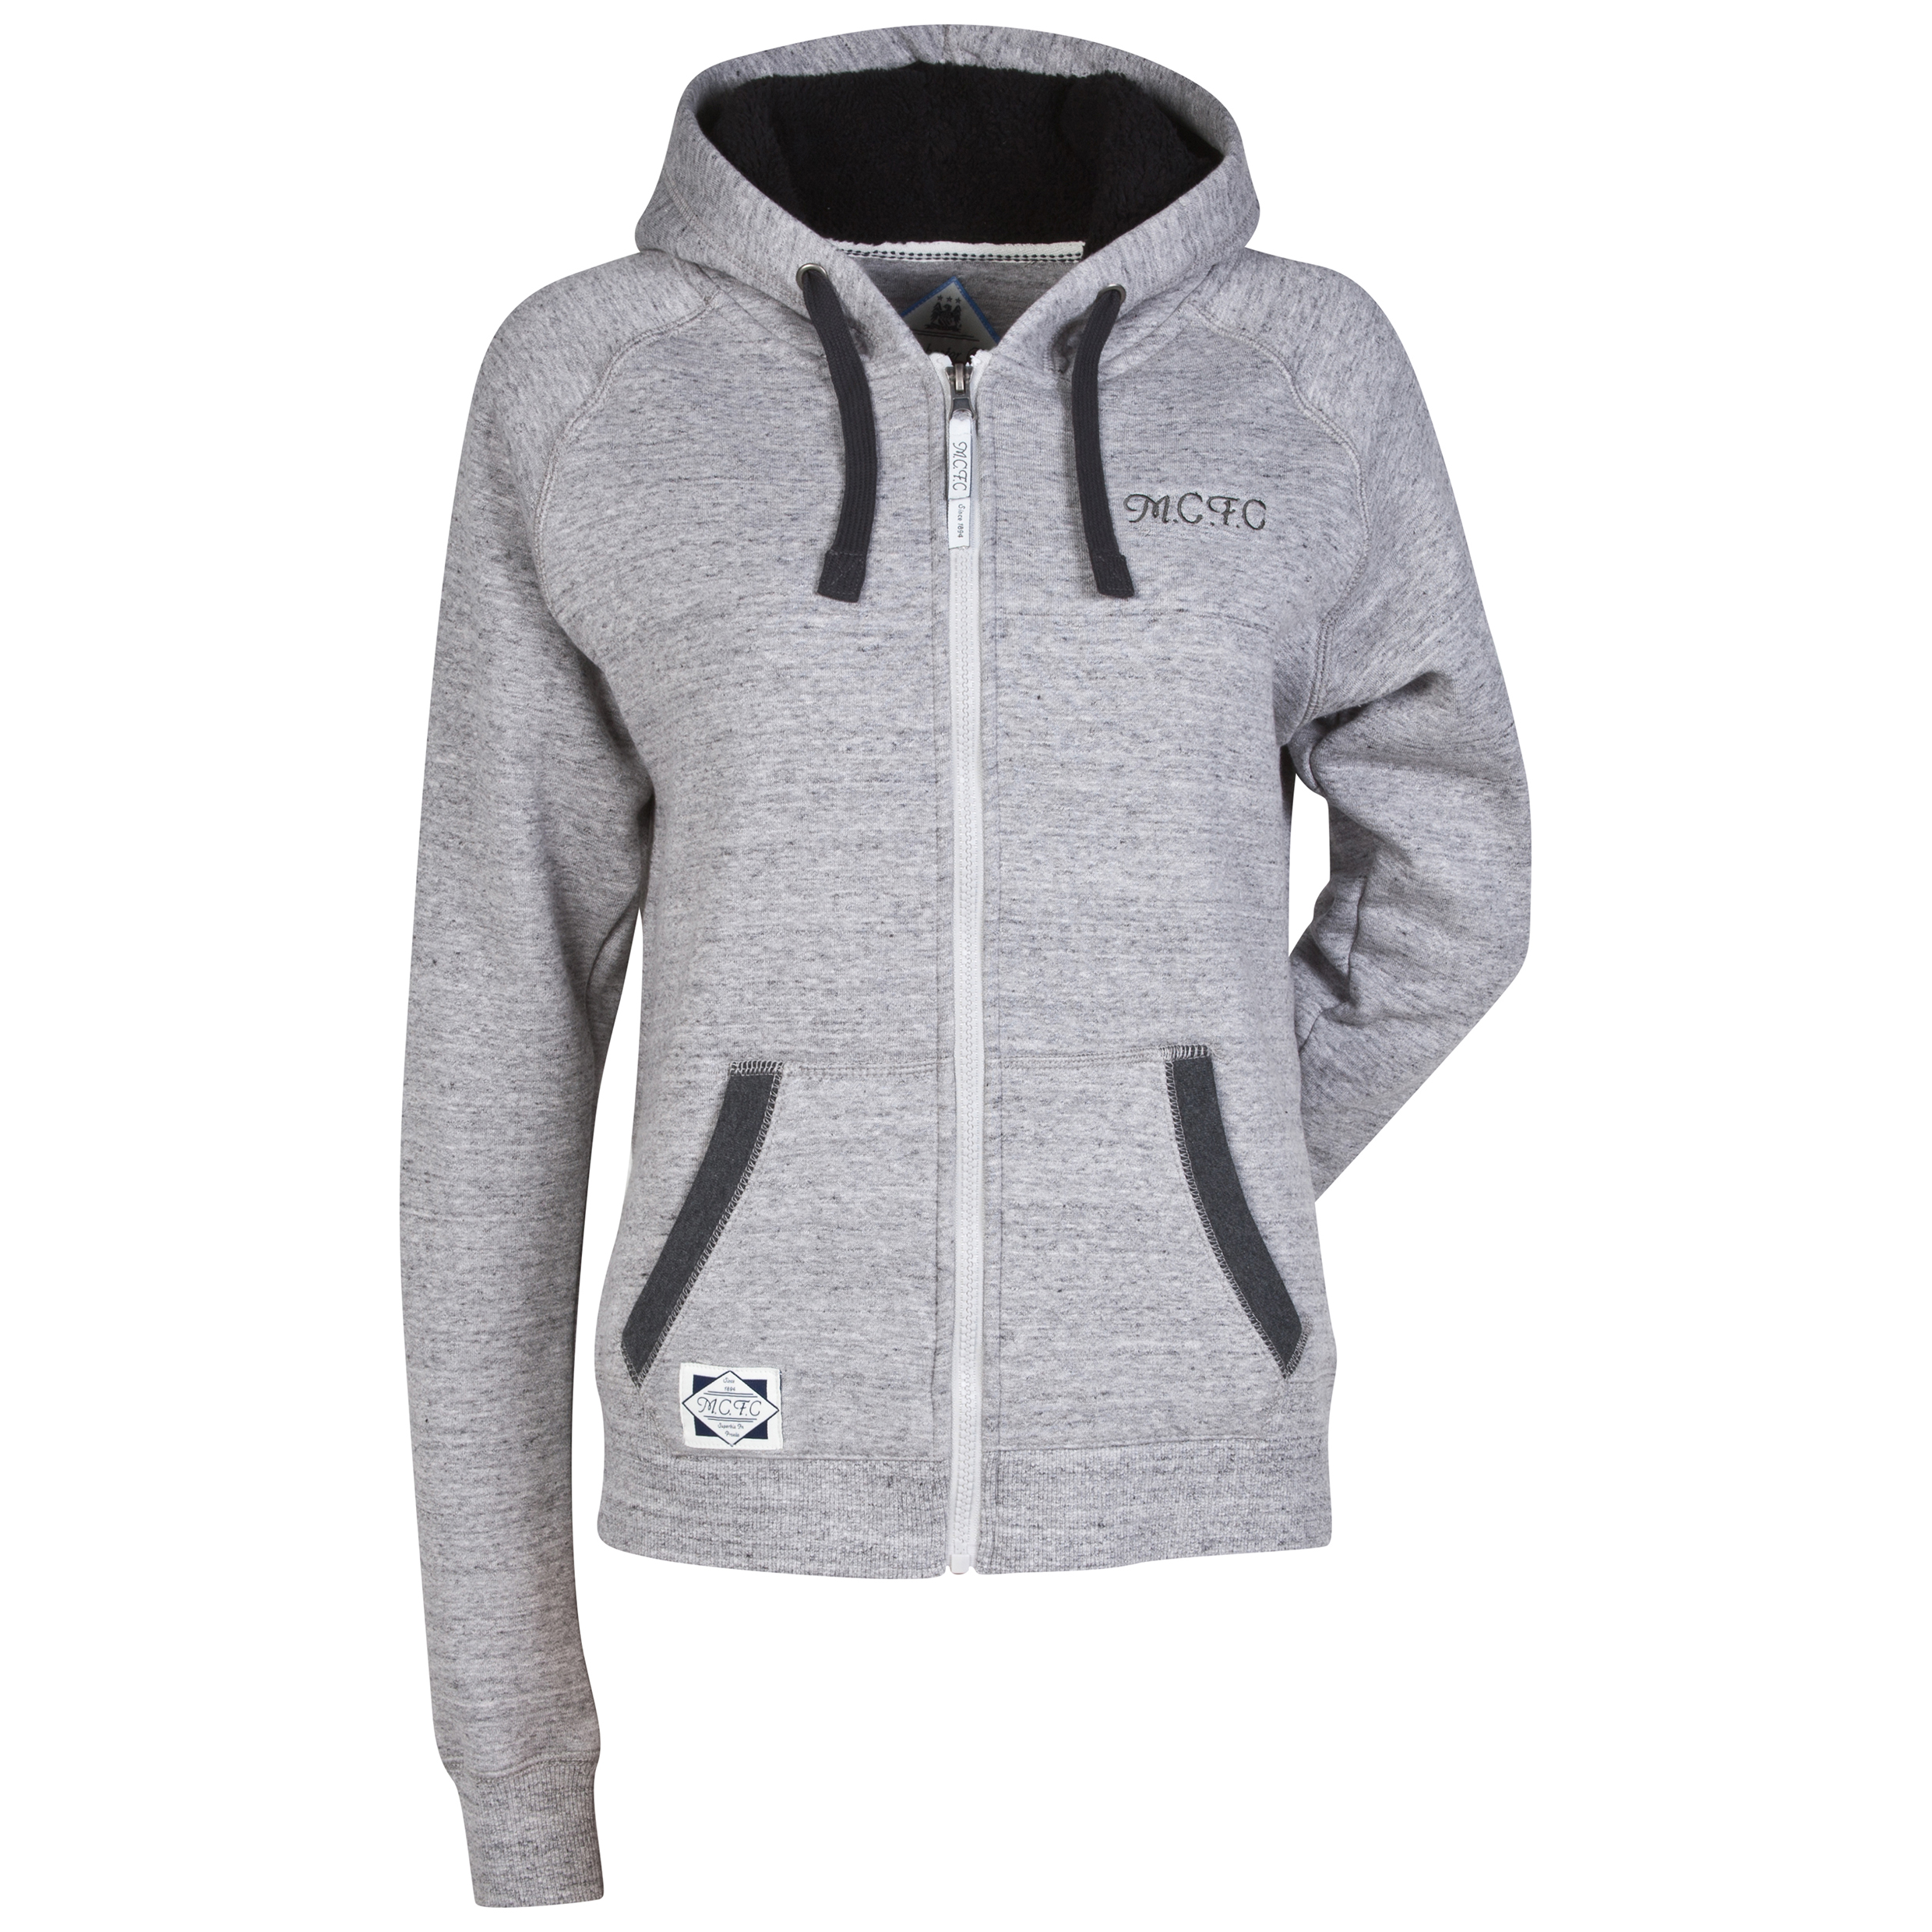 Manchester City Sherpa Hoodie - Grey Marl - Womens